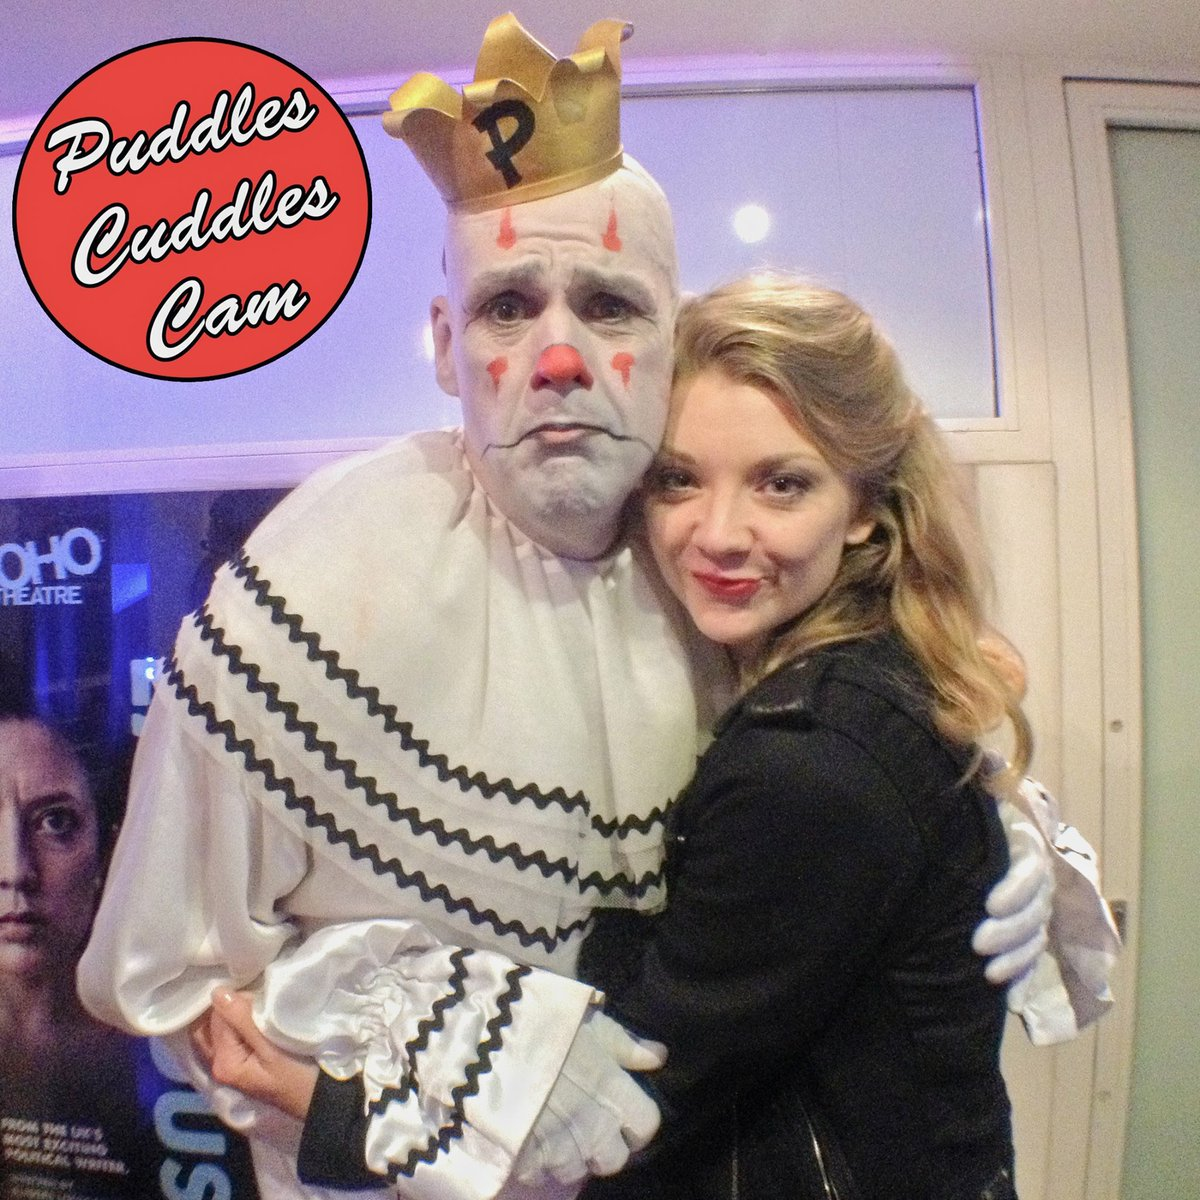 Puddles Pity Party on Twitter: